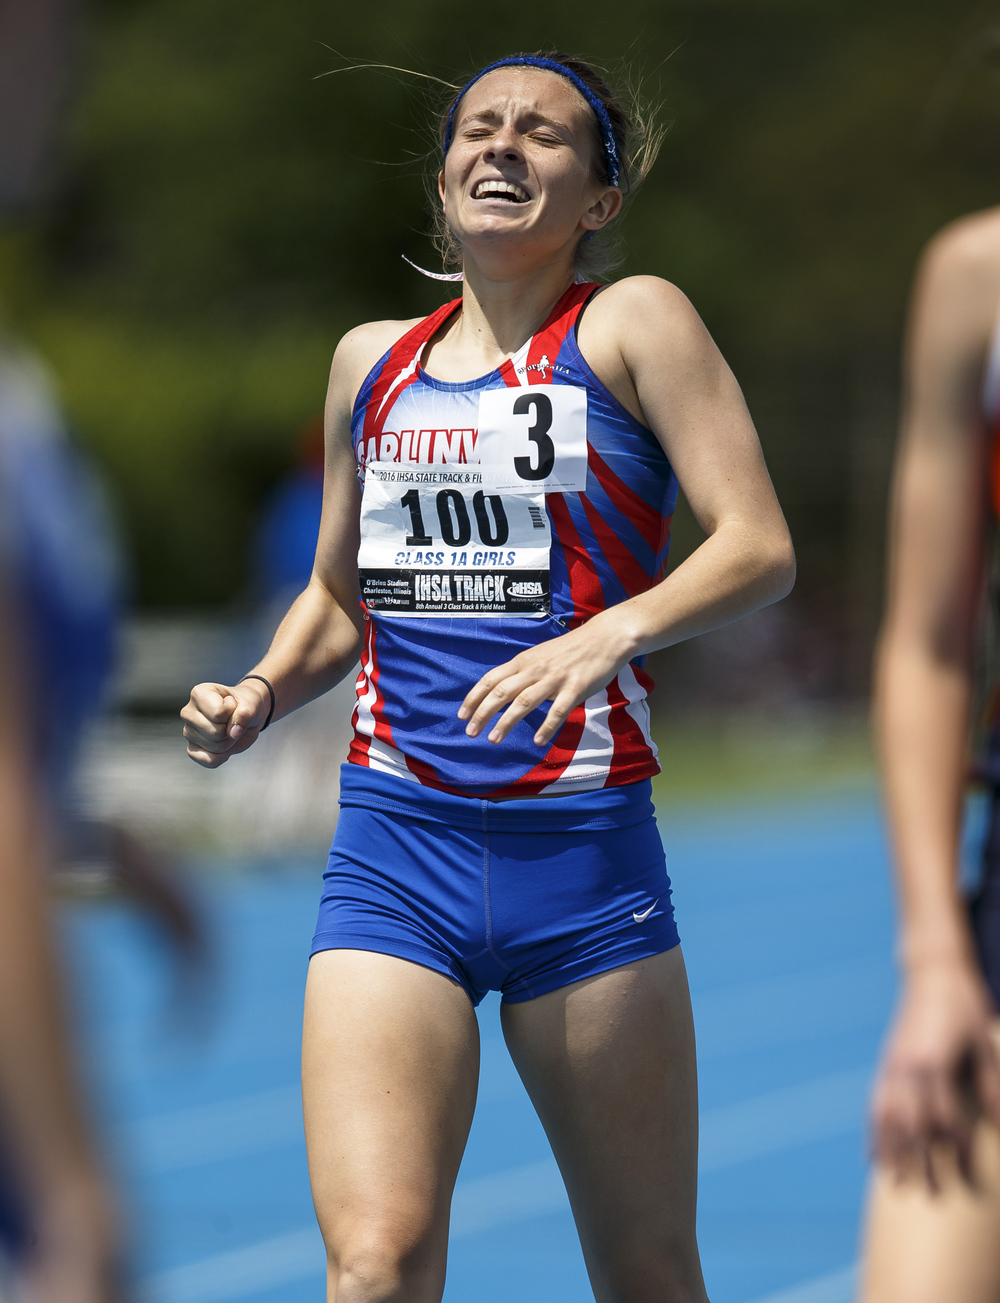 Carlinville's Jacey Roper reacts after finishing 5th with a time of 2:18.65 in the Class 1A 800-Meter Run during the 2016 IHSA Girls State Track and Field Meet at O'Brien Stadium, Saturday, May 21, 2016, in Charleston, Ill. Justin L. Fowler/The State Journal-Register